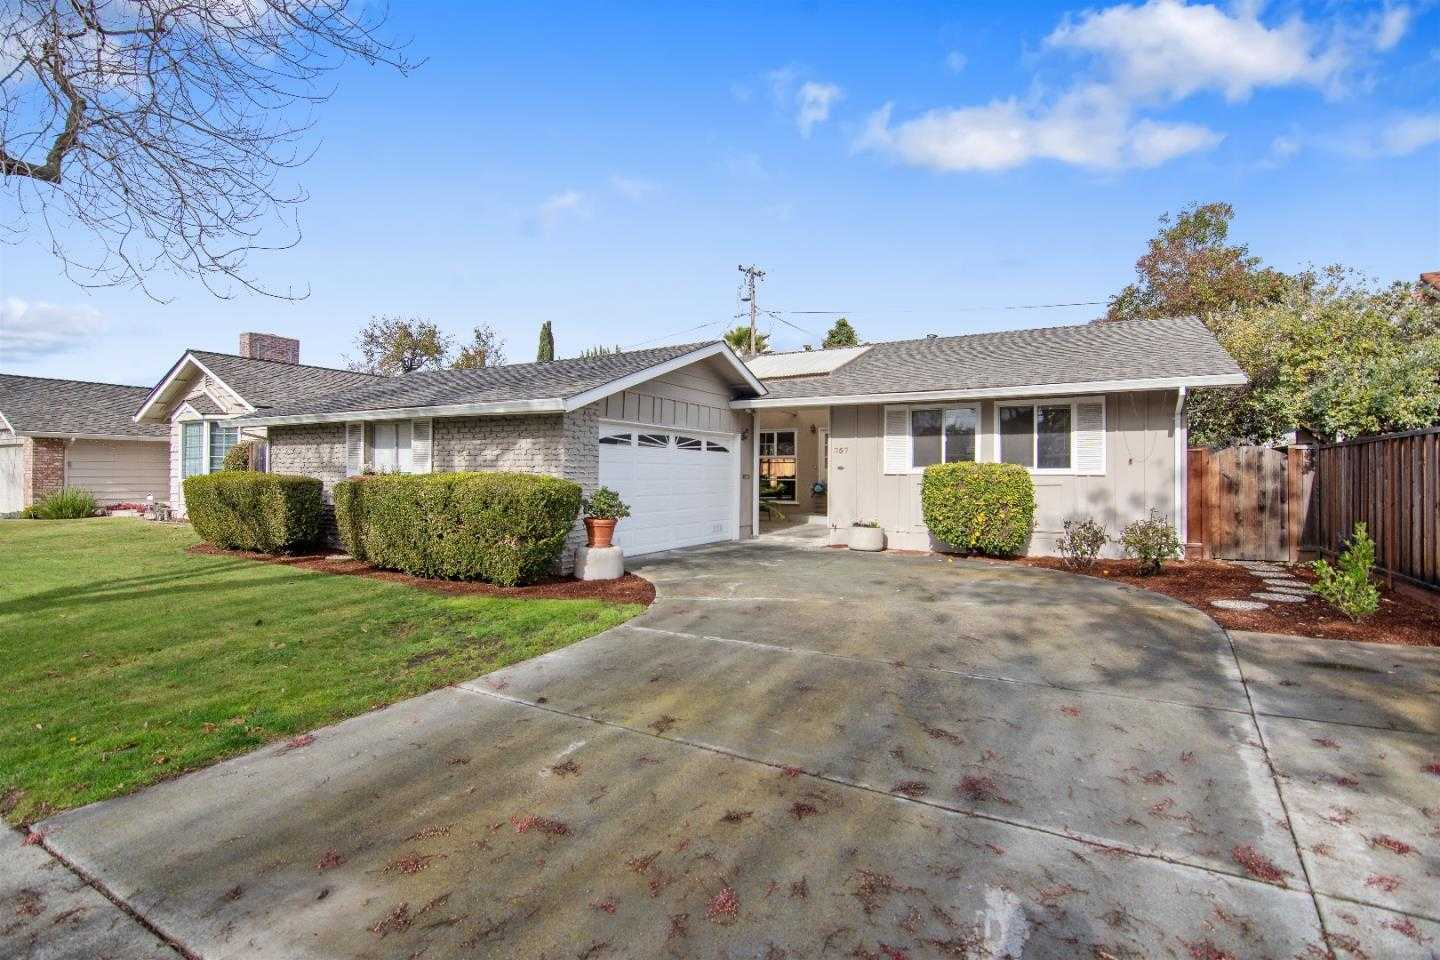 $1,695,000 - 3Br/2Ba -  for Sale in Sunnyvale